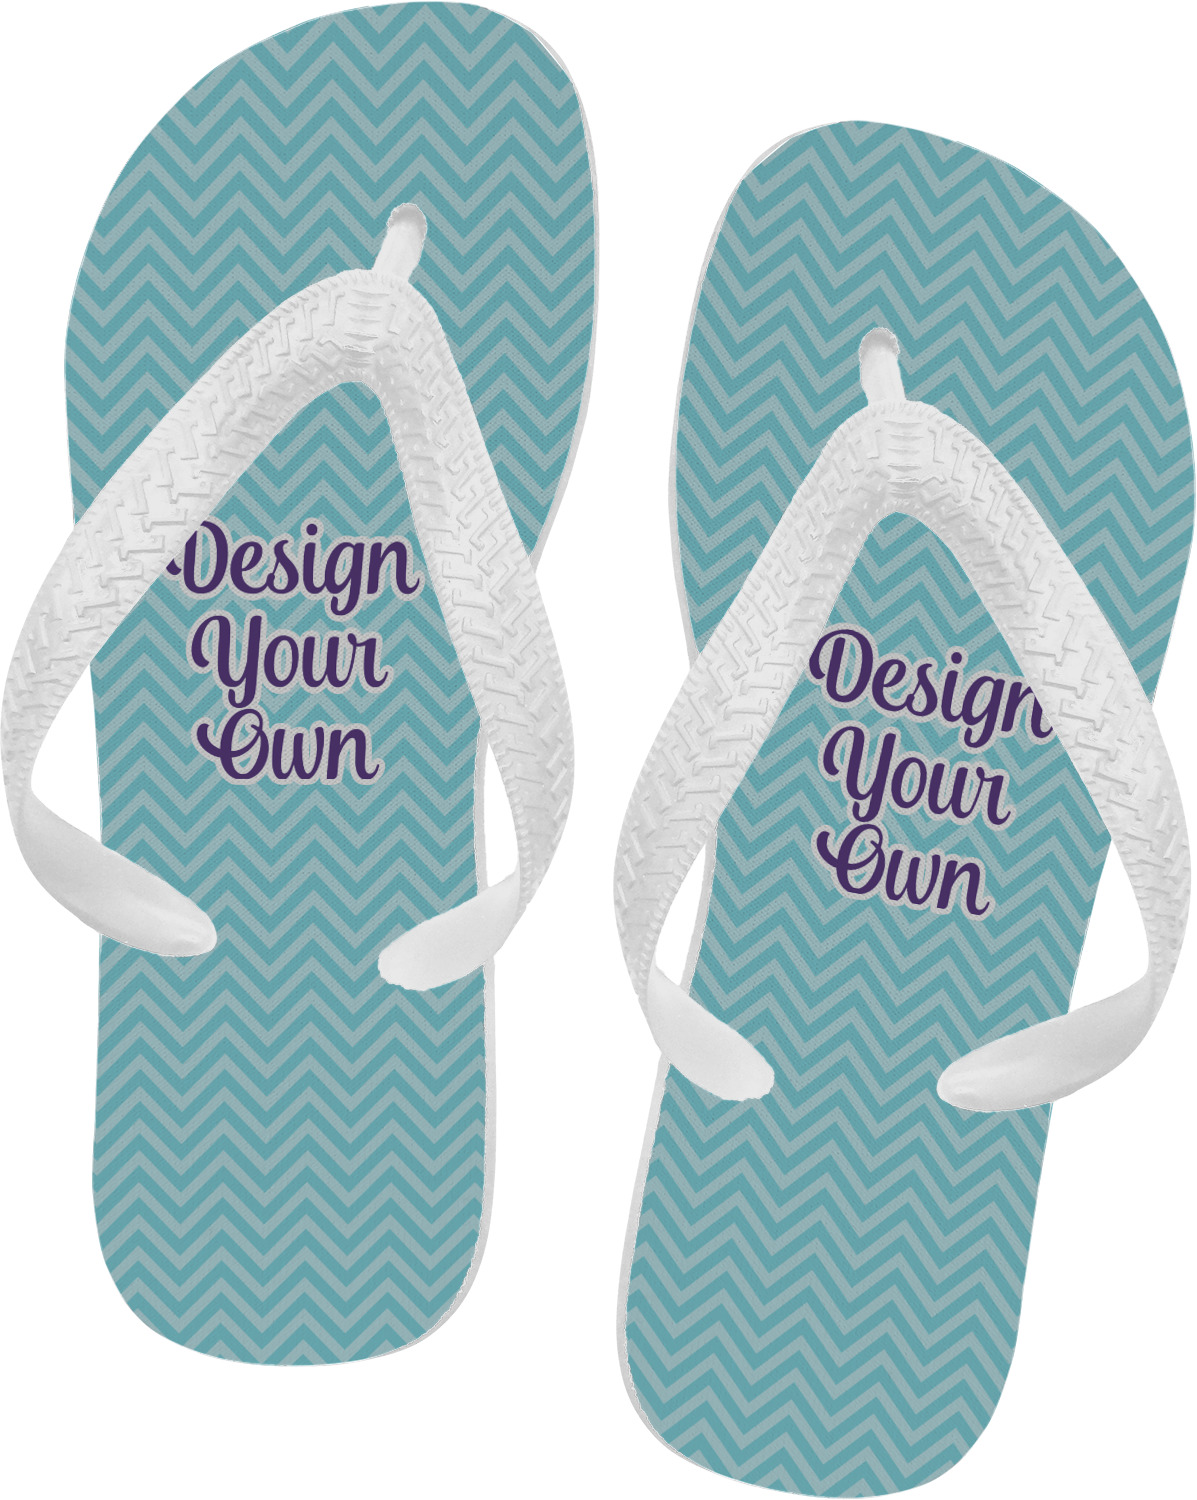 Design Your Own Personalized Flip Flops